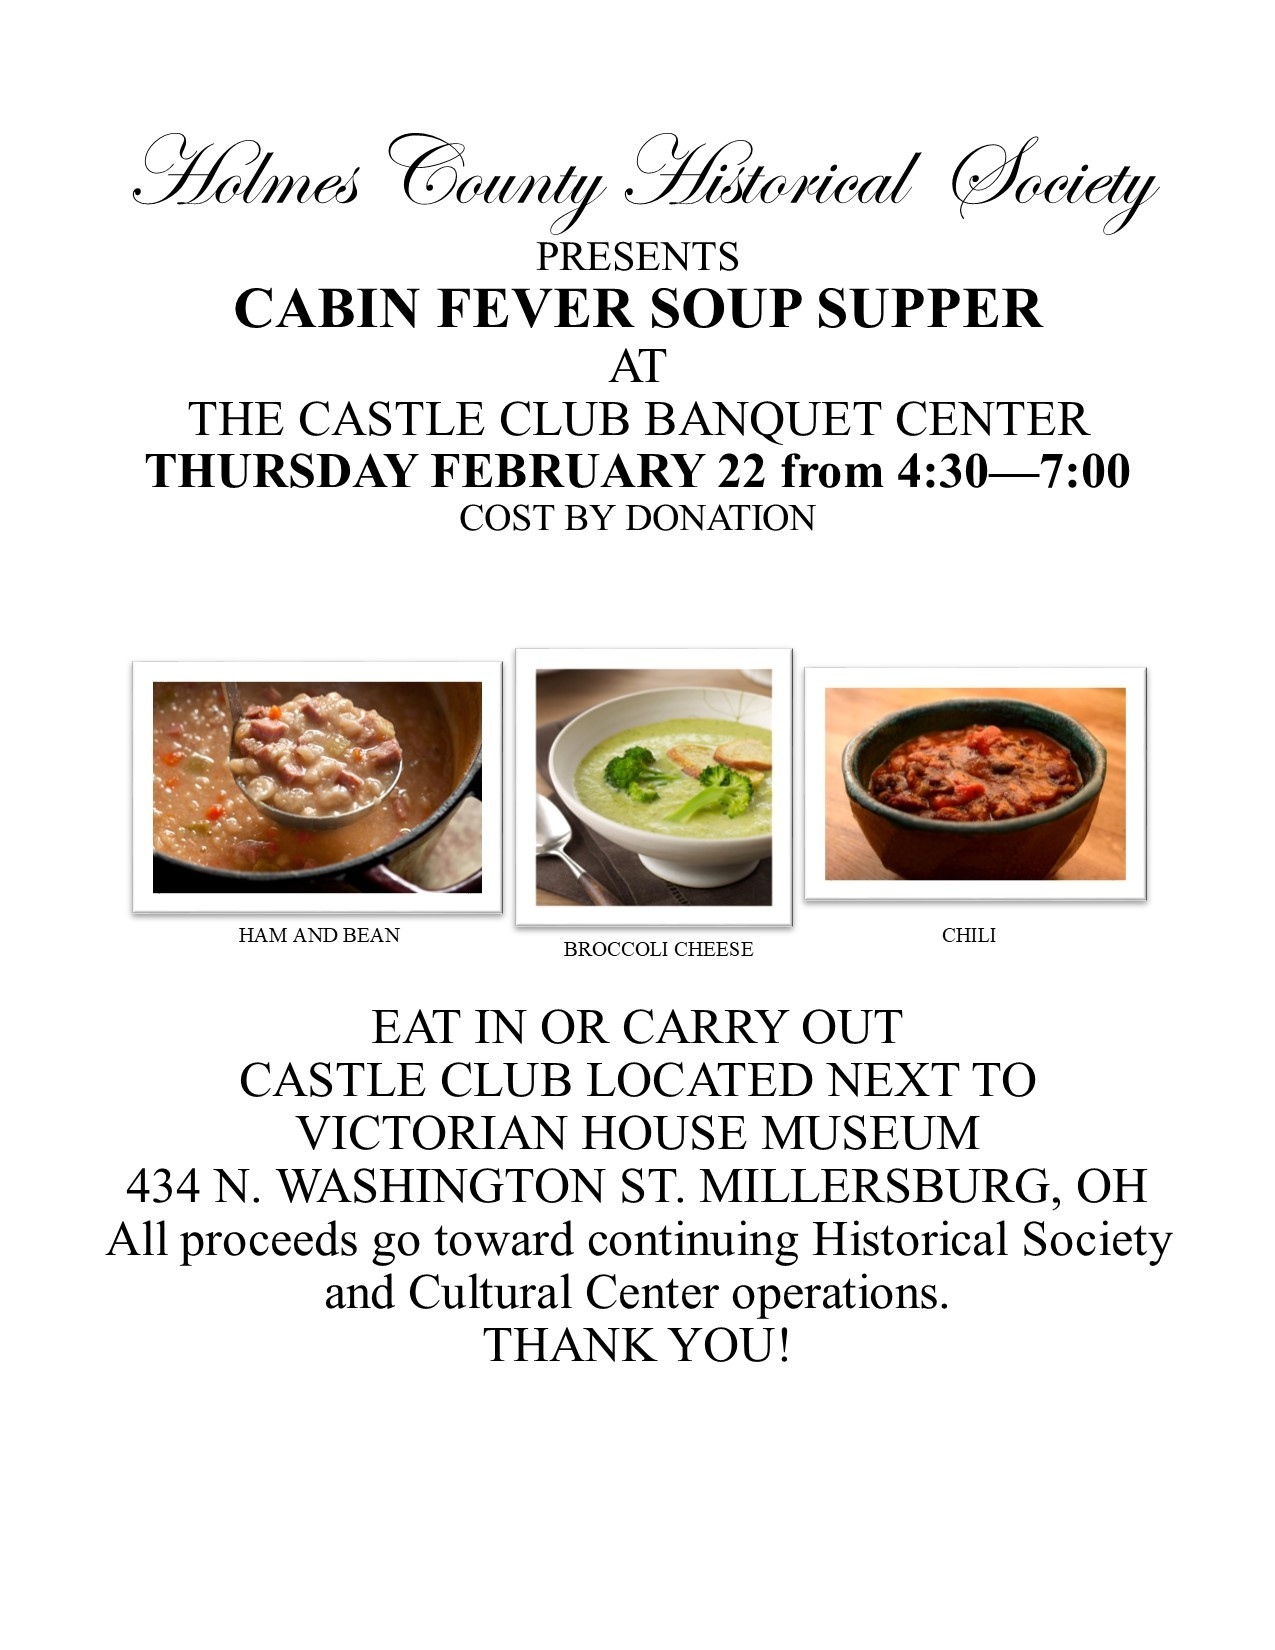 Cabin Fever Soup Supper